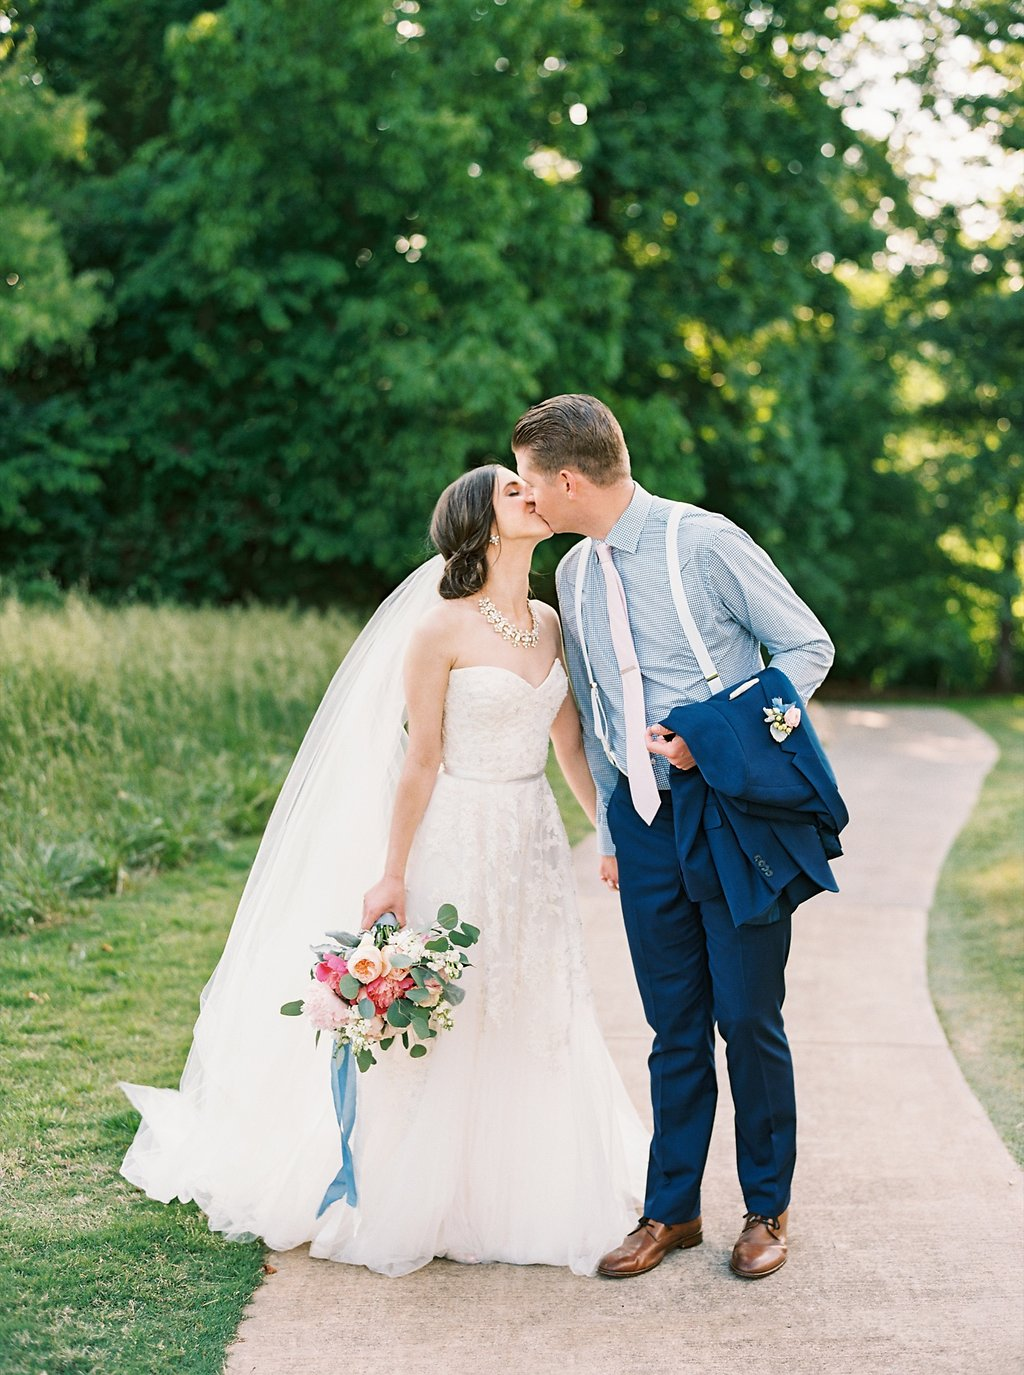 Groom in Navy Gingham Shirt, White Suspenders and a Bright Blue Kenneth Cole Suit | Sweet Newlywed Photos after our Wedding Ceremony | Blush and Navy Wedding with Fuchsia, French Blue and Gold Accents | Simply Jessica Marie's Southern Wedding at Gettysvue Golf Course and Country Club in Knoxville Tennessee | Photo by Perry Vaile Photography